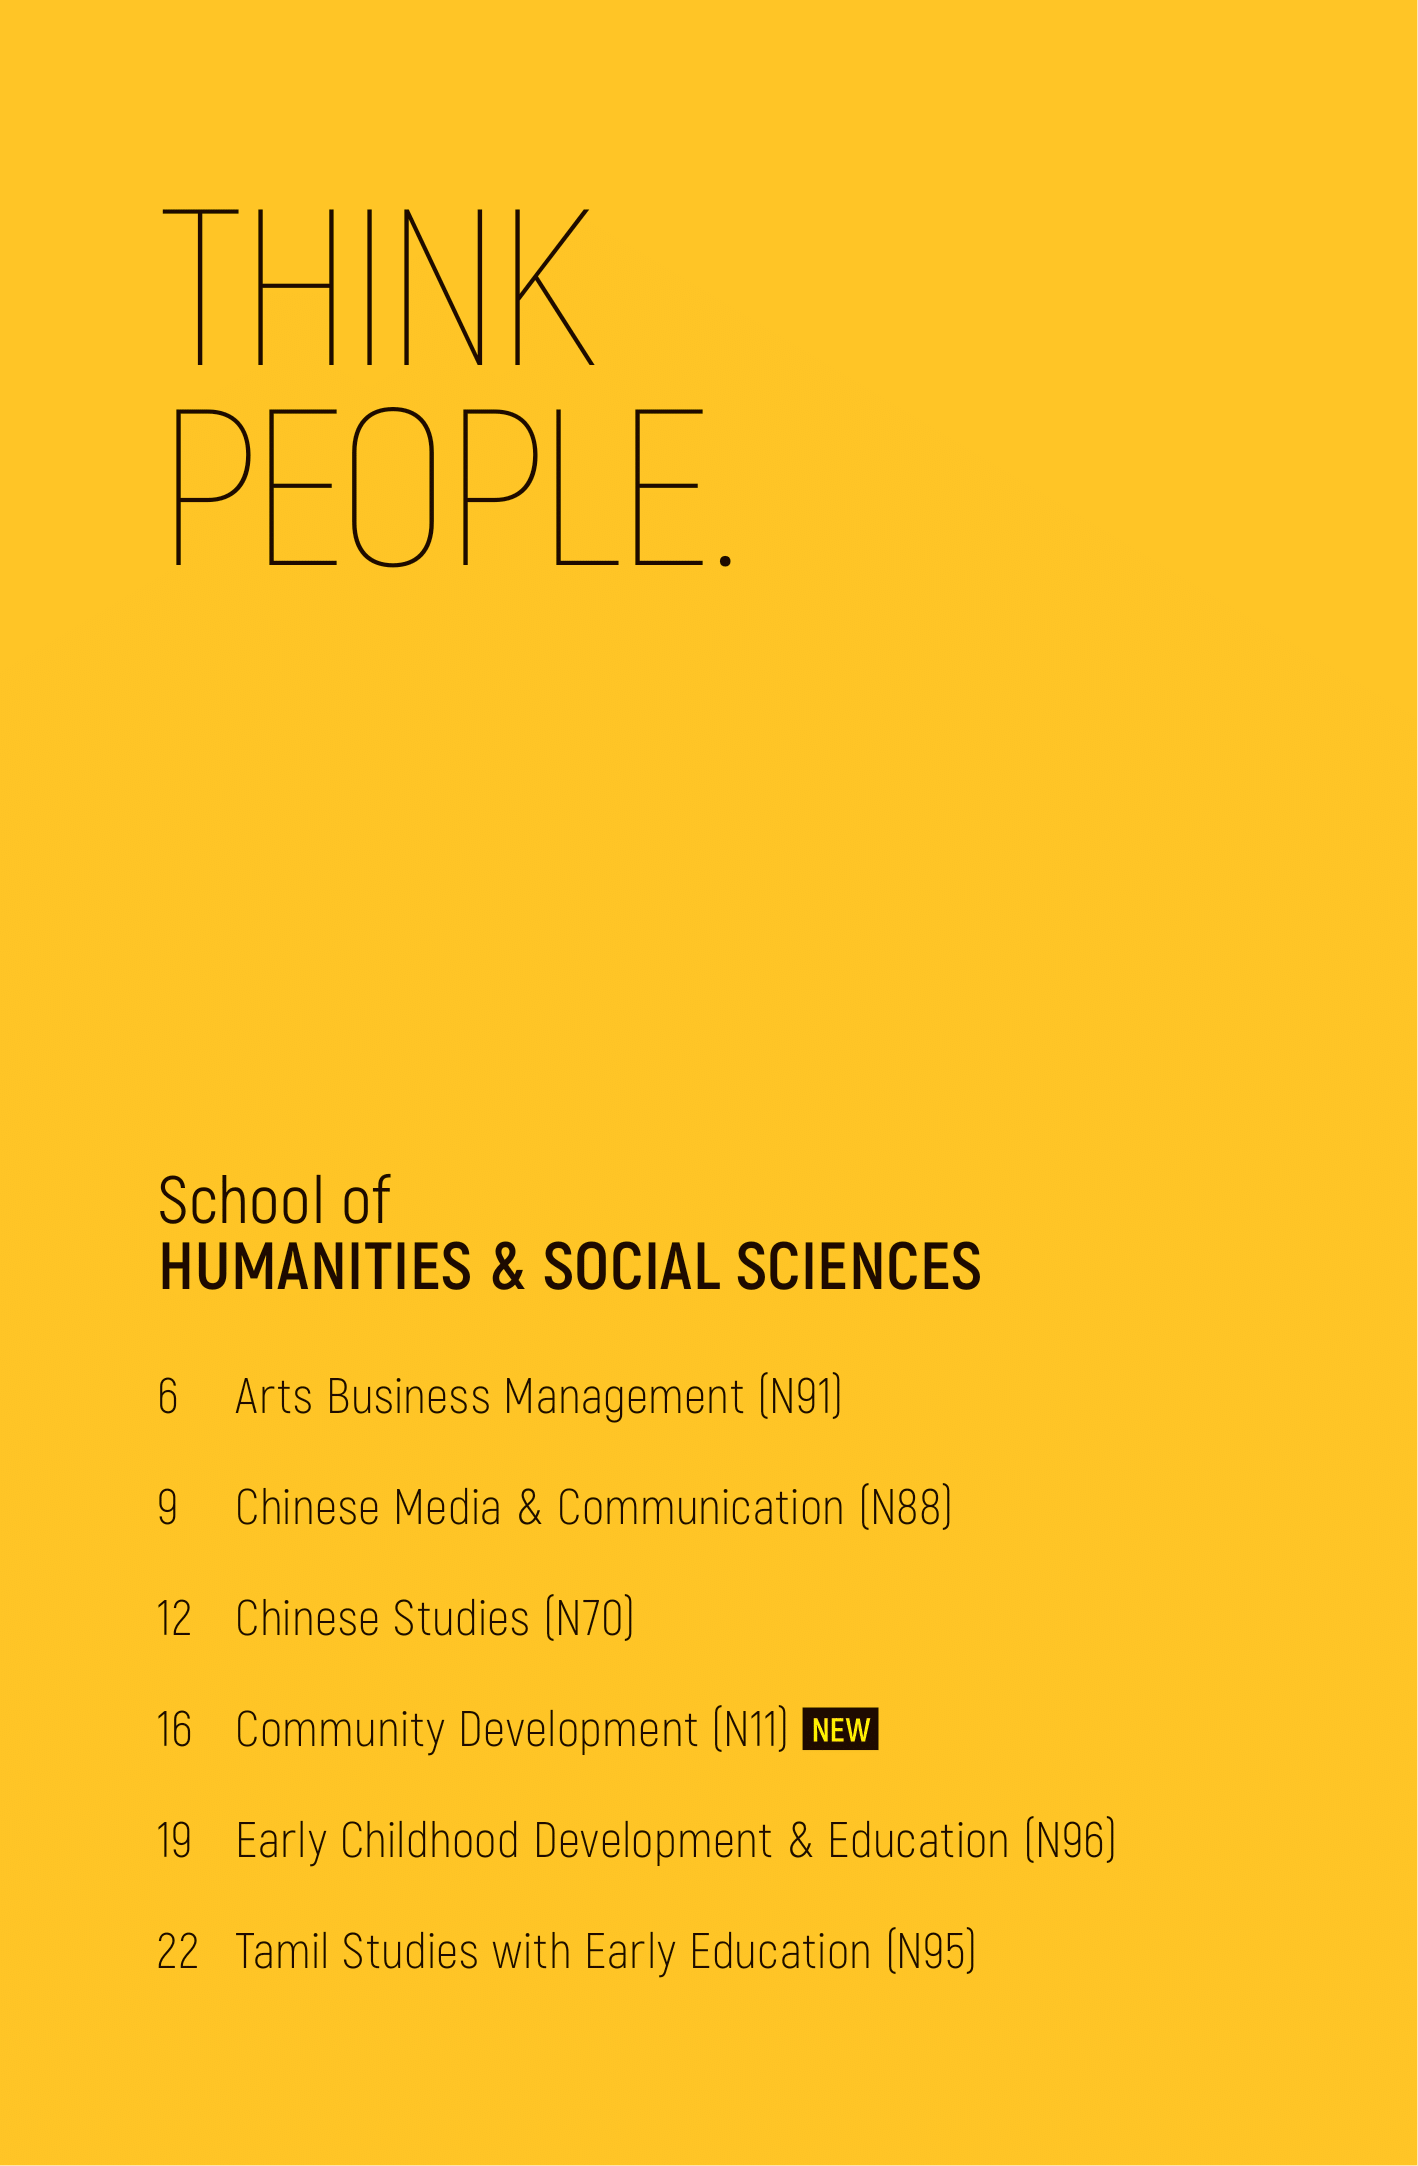 School of Humanities & Social Sciences 2020-02